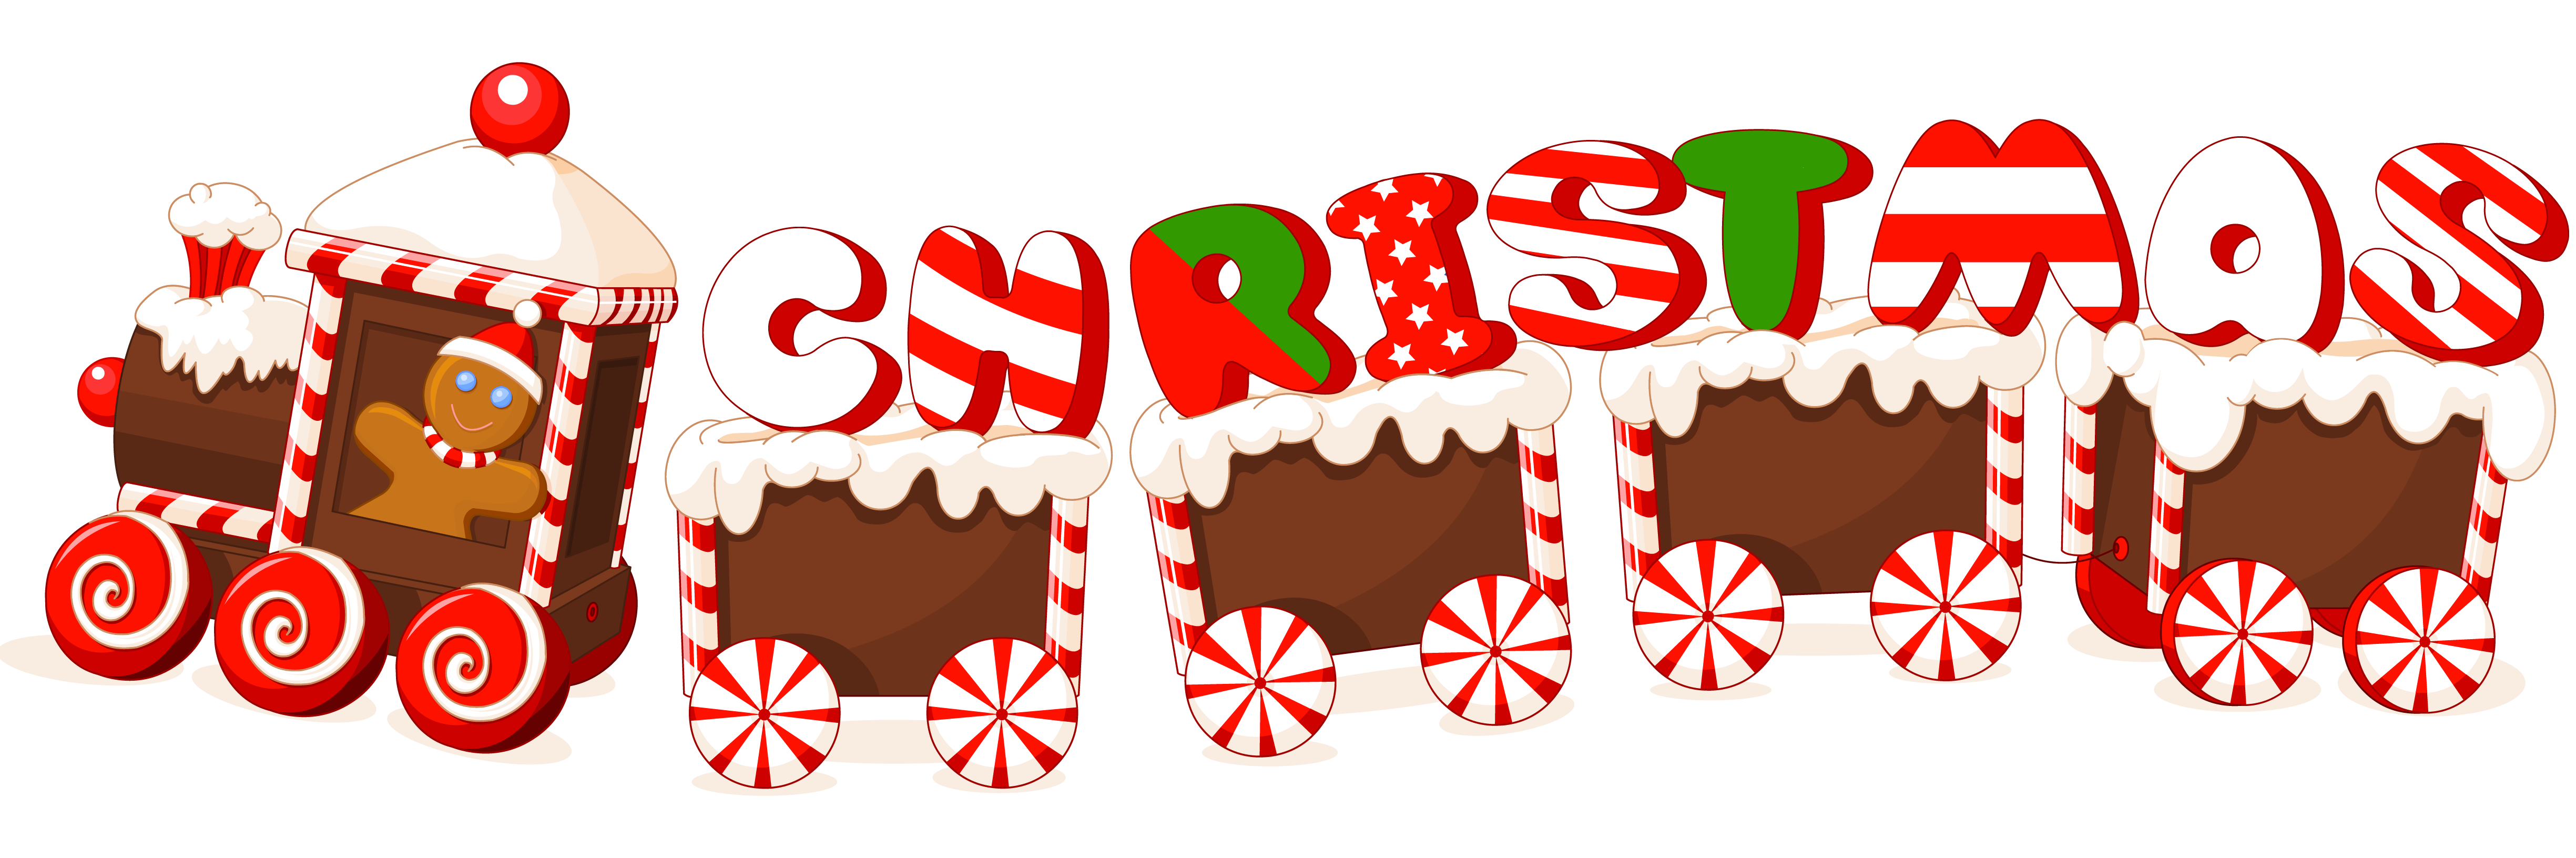 16 Merry Christmas Clipart-16 Merry Christmas Clipart-12